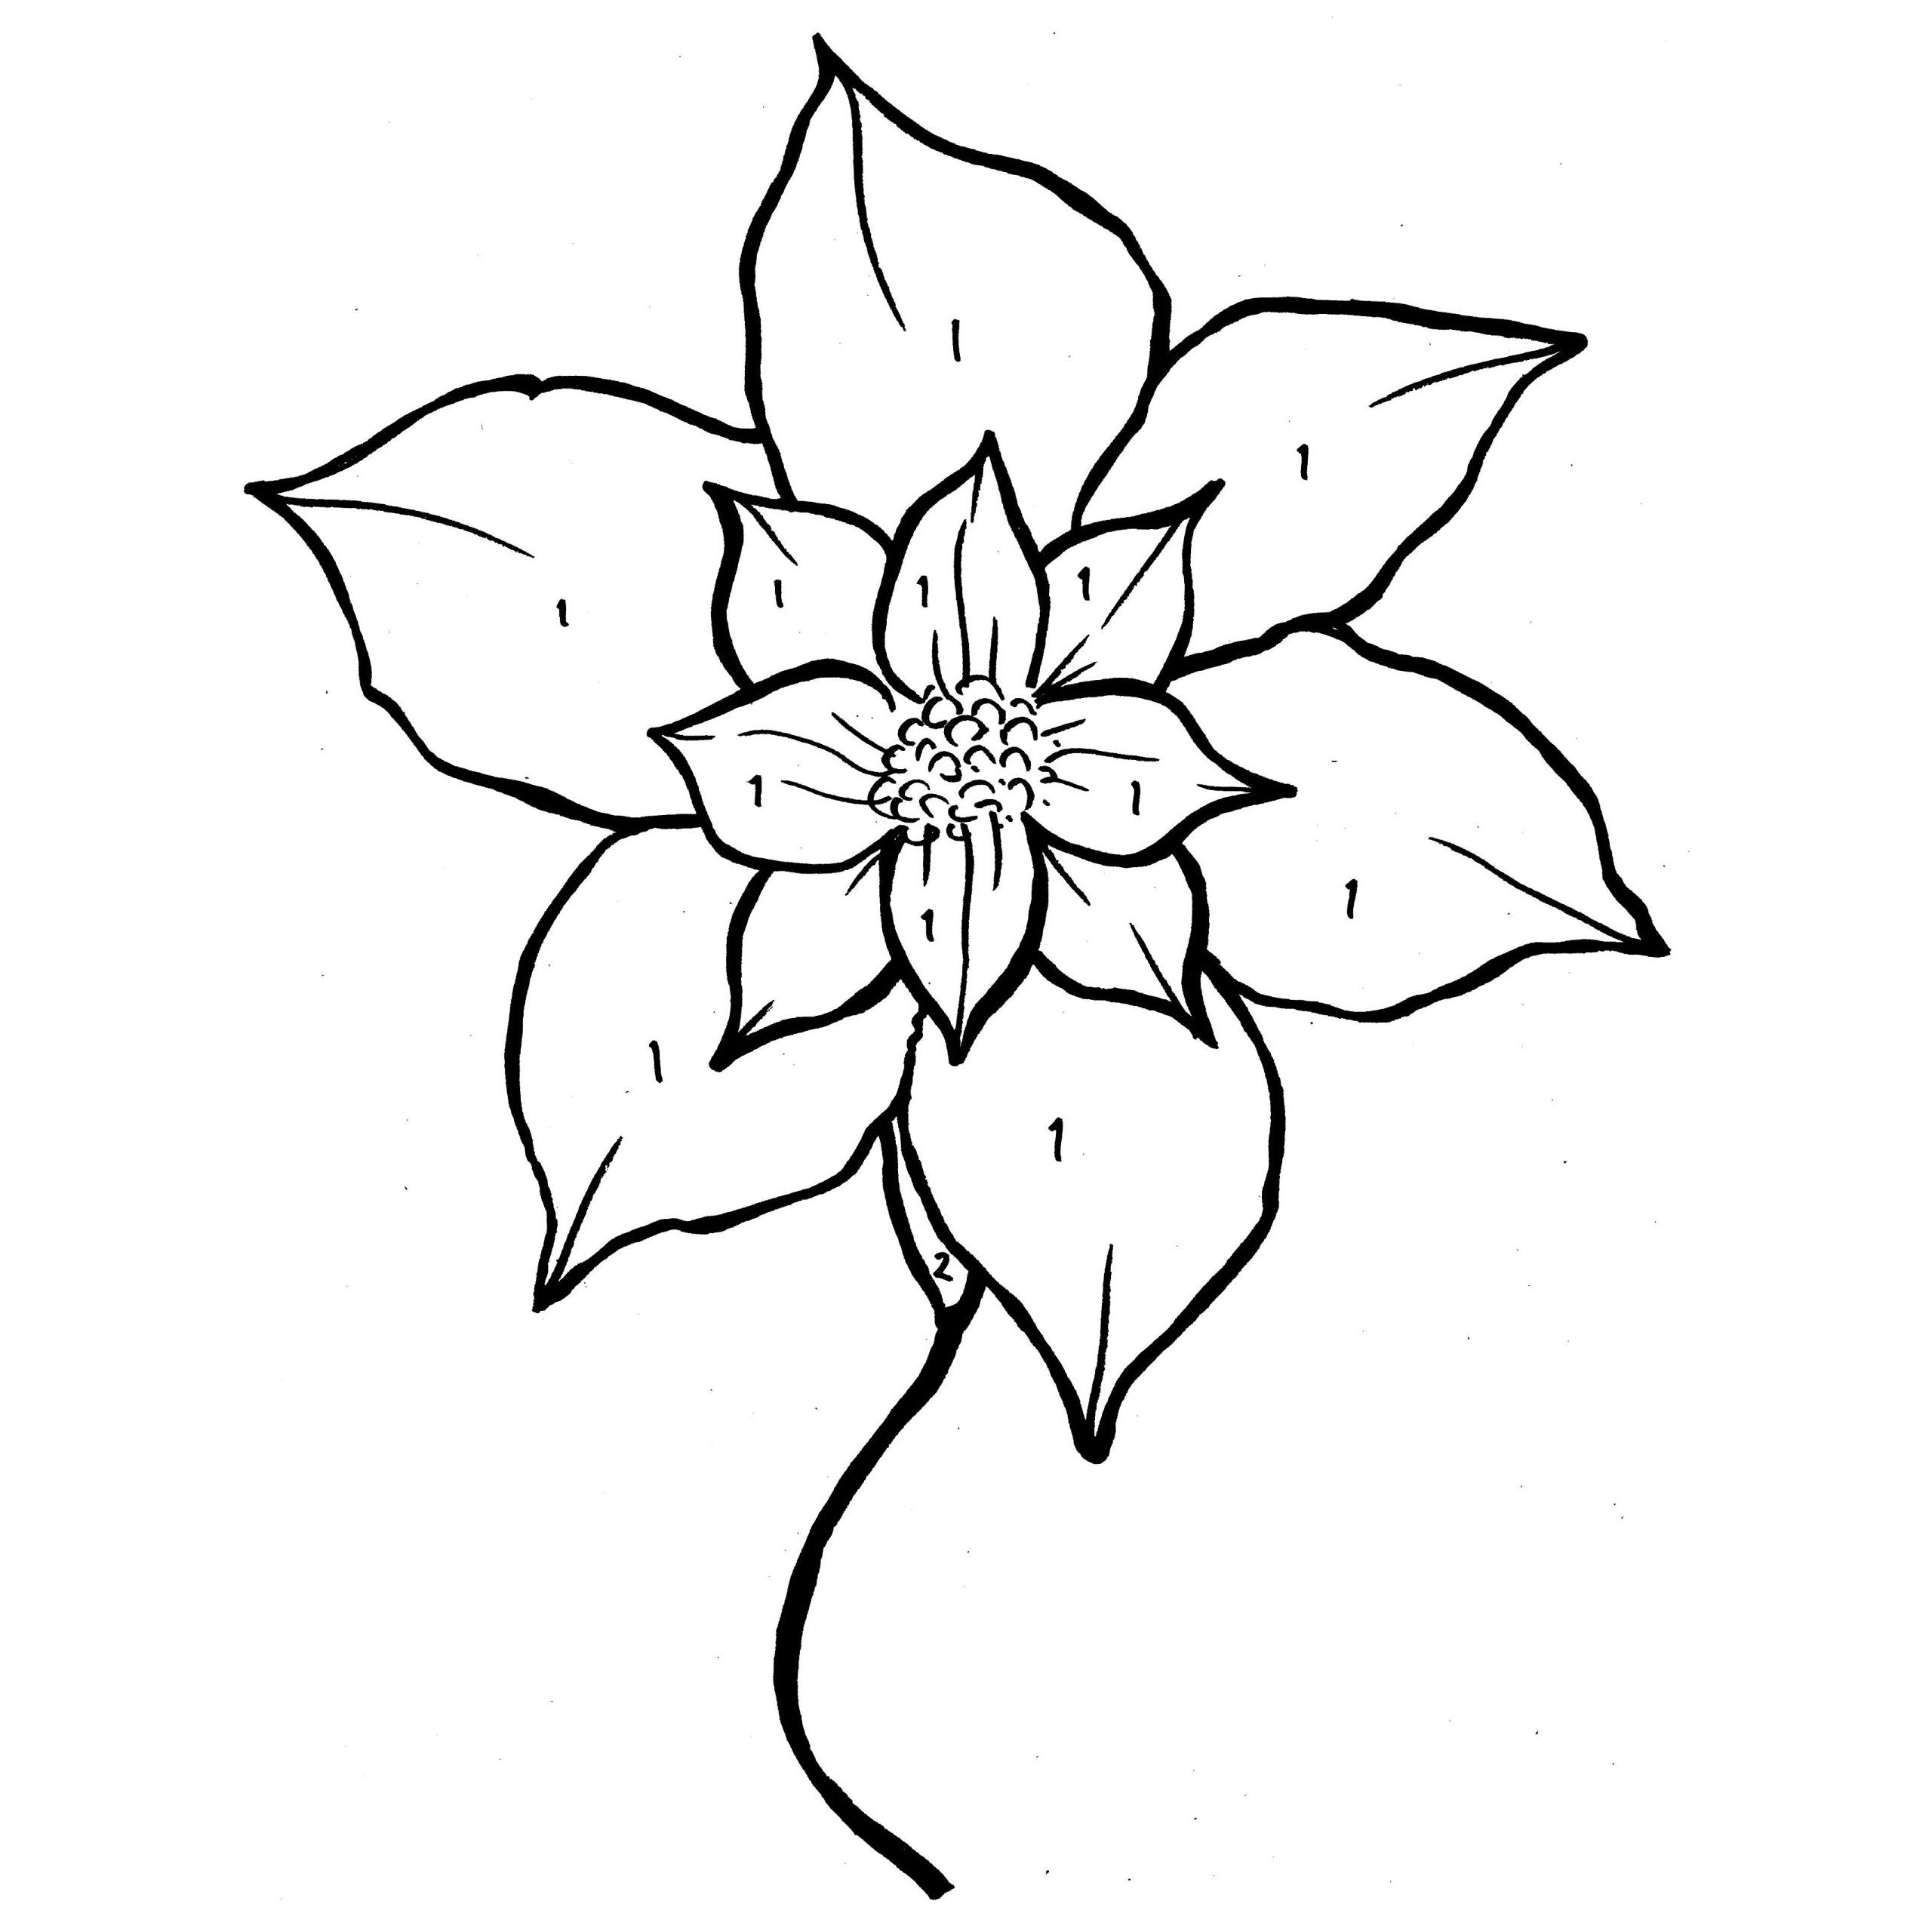 2560x2560 Poinsettia Or Christmas Flower Coloring Page Free Printable